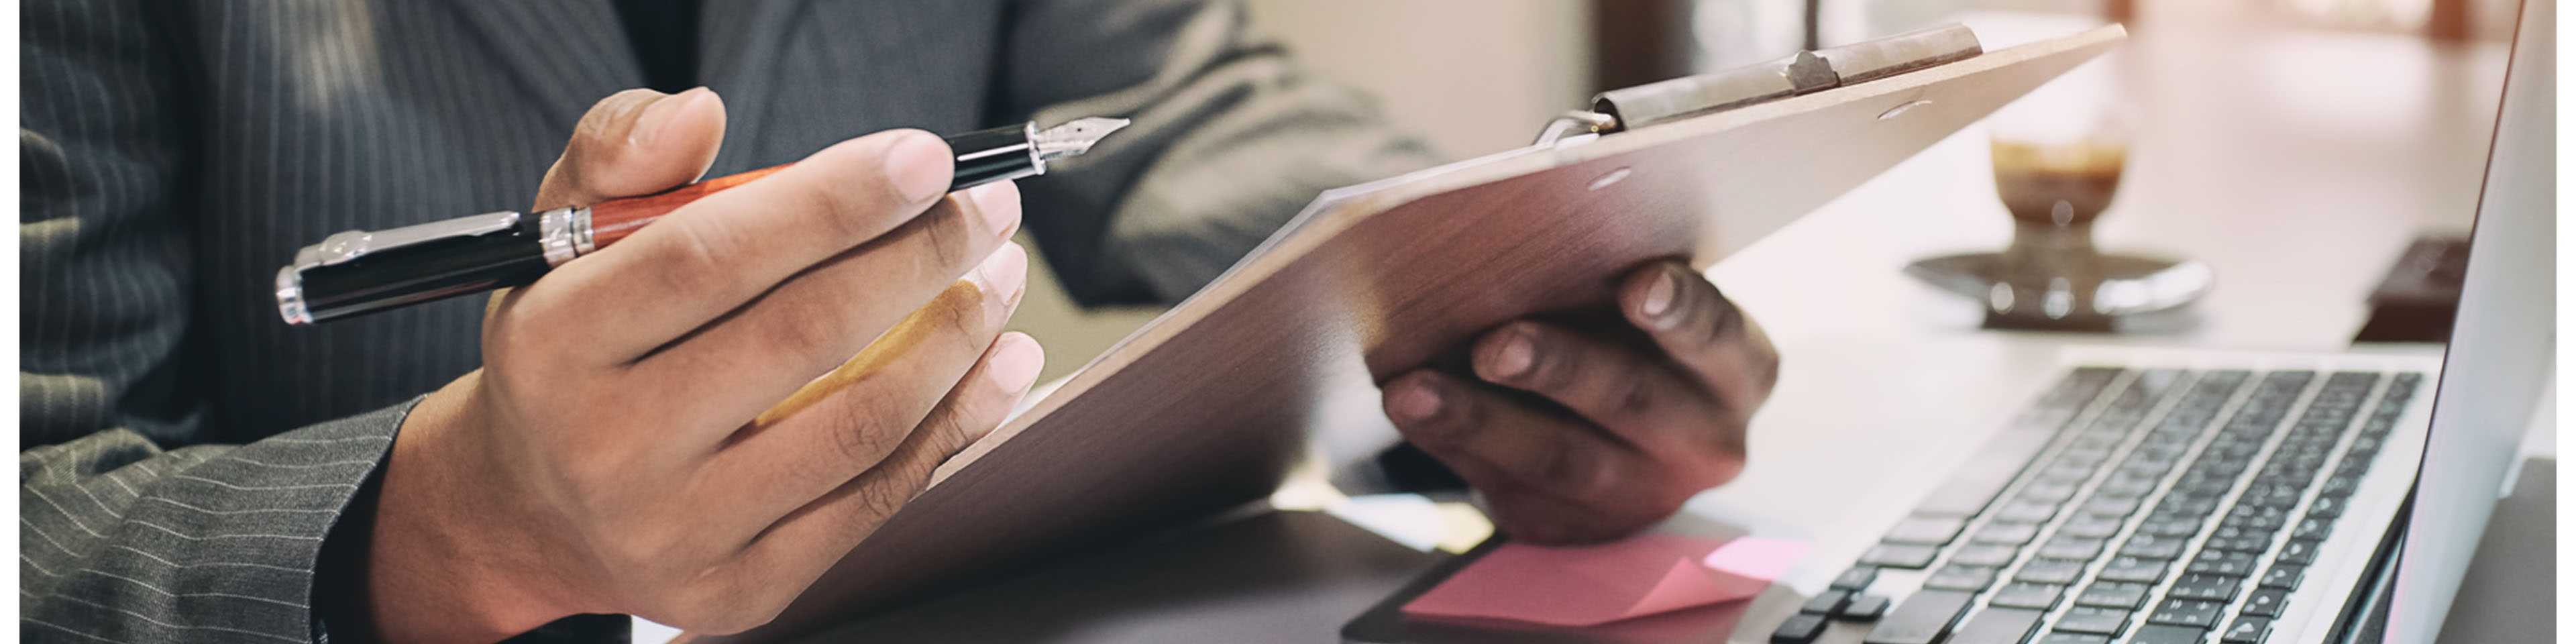 What Is Required to Become a Registered Agent?